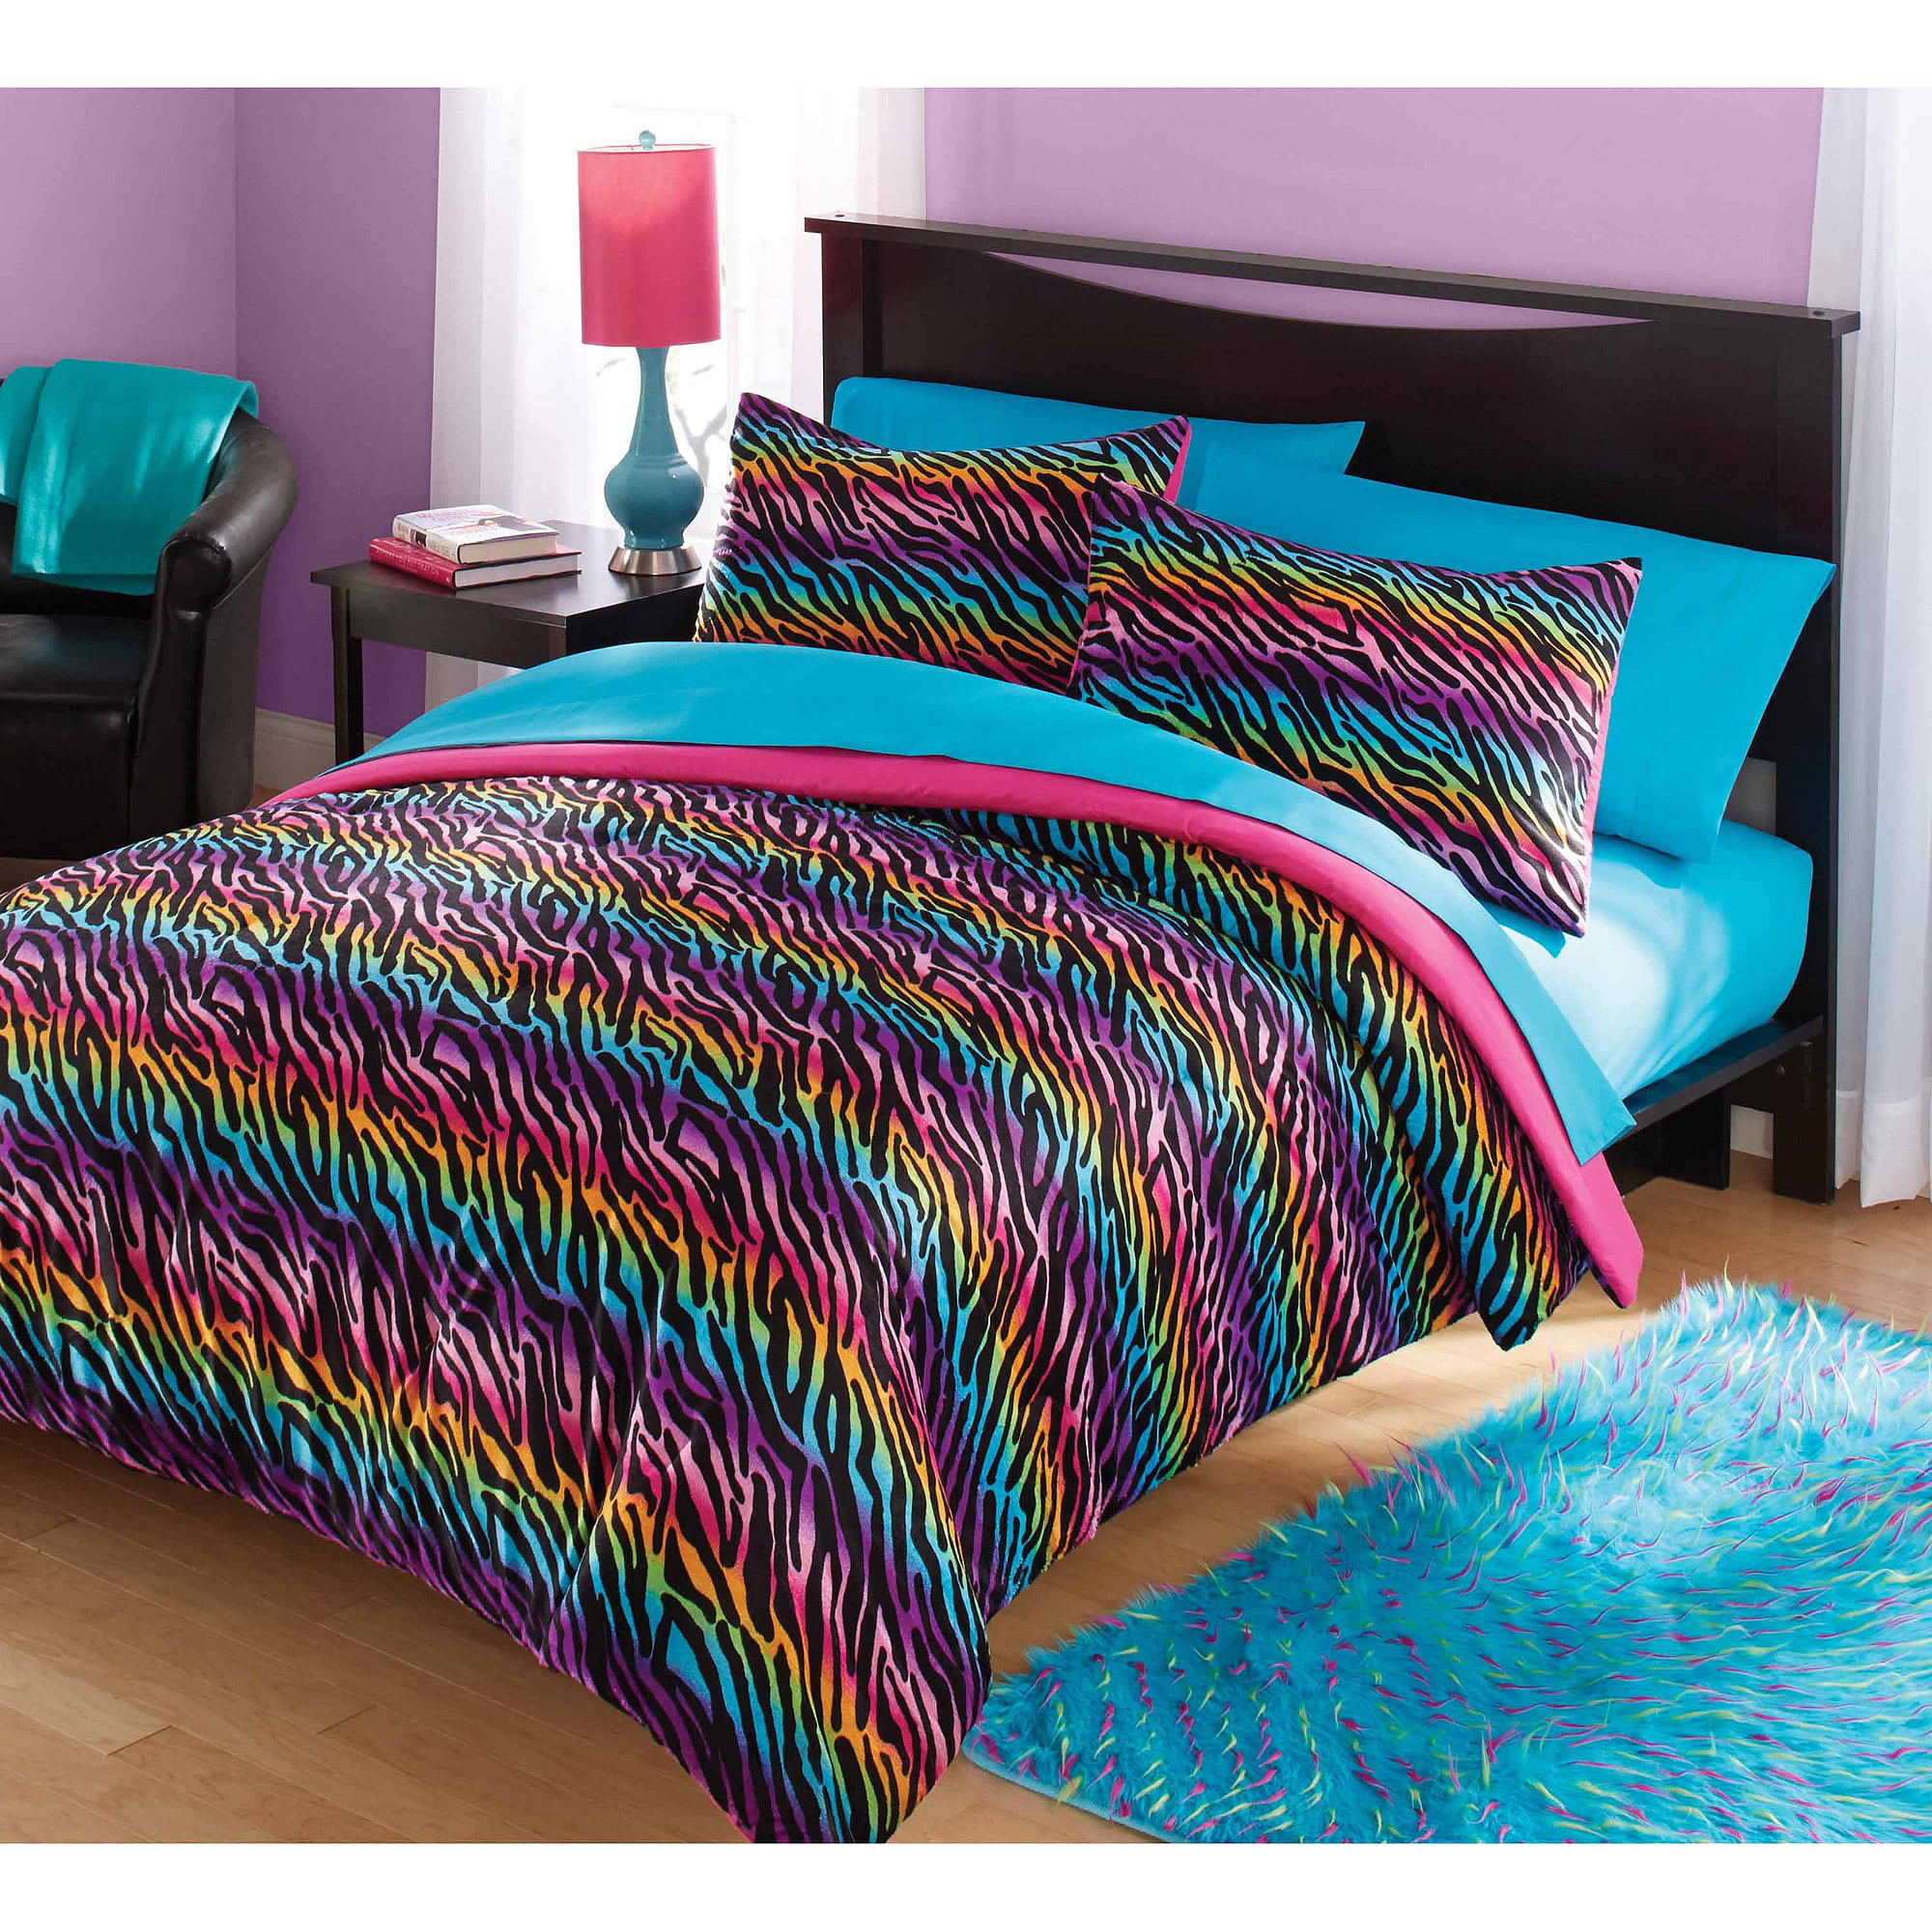 Superior Your Zone Mink Rainbow Zebra Bedding Comforter Set   Walmart.com